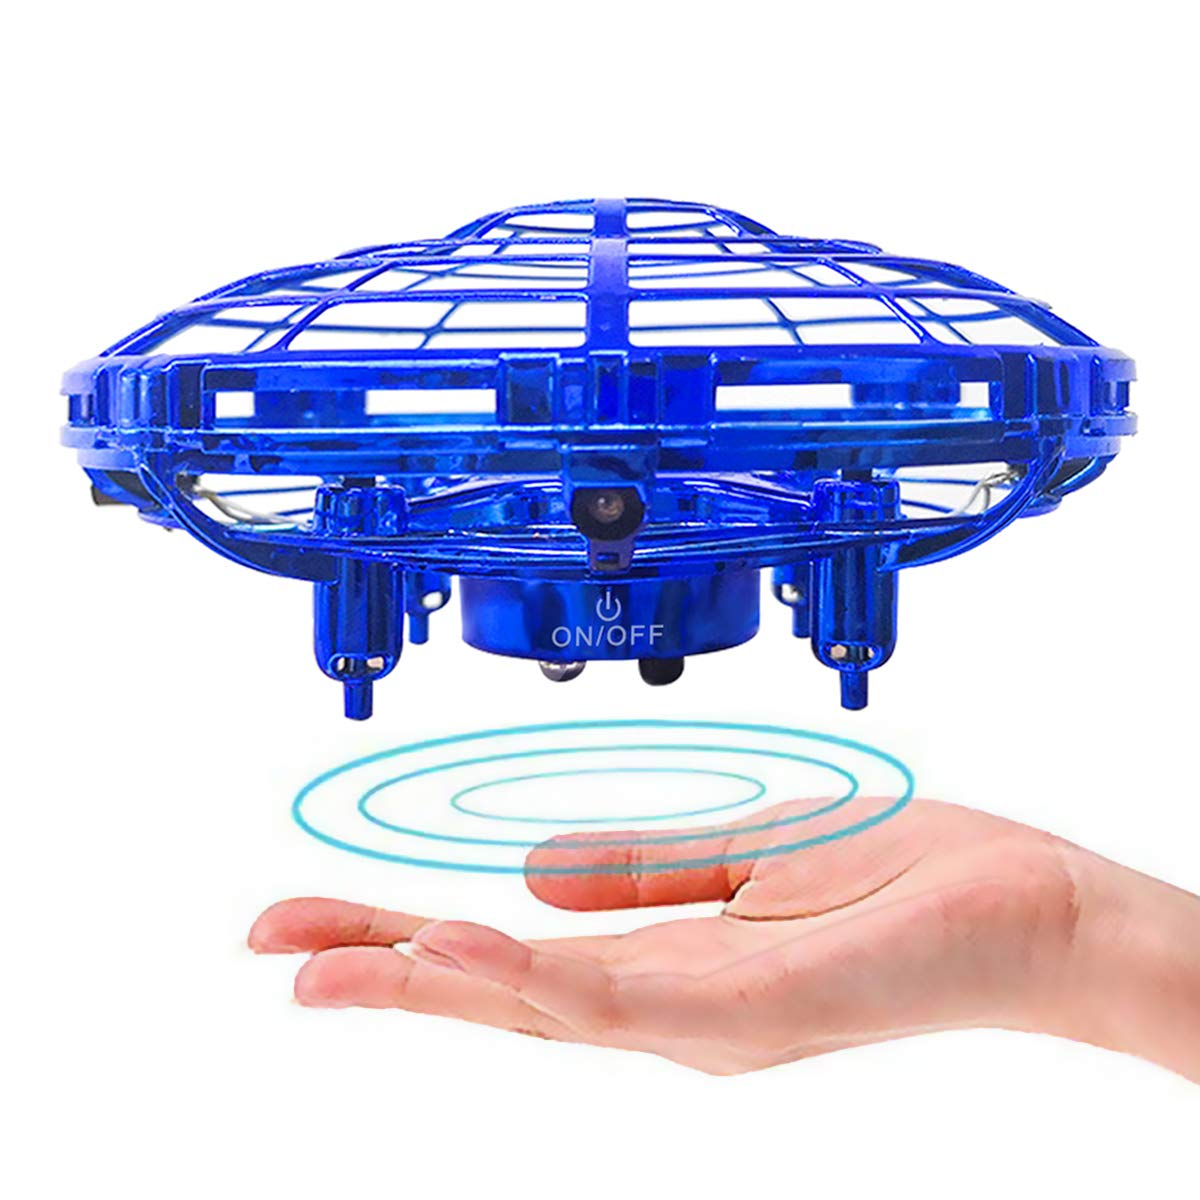 EKOHOME Hand Operated Drones for Kids or Adults- UFO Flying Toy Hand Free Mini Flying Ball Drones Toys Indoor Infrared Induction for Boys and Girls (Blue) by EKOHOME